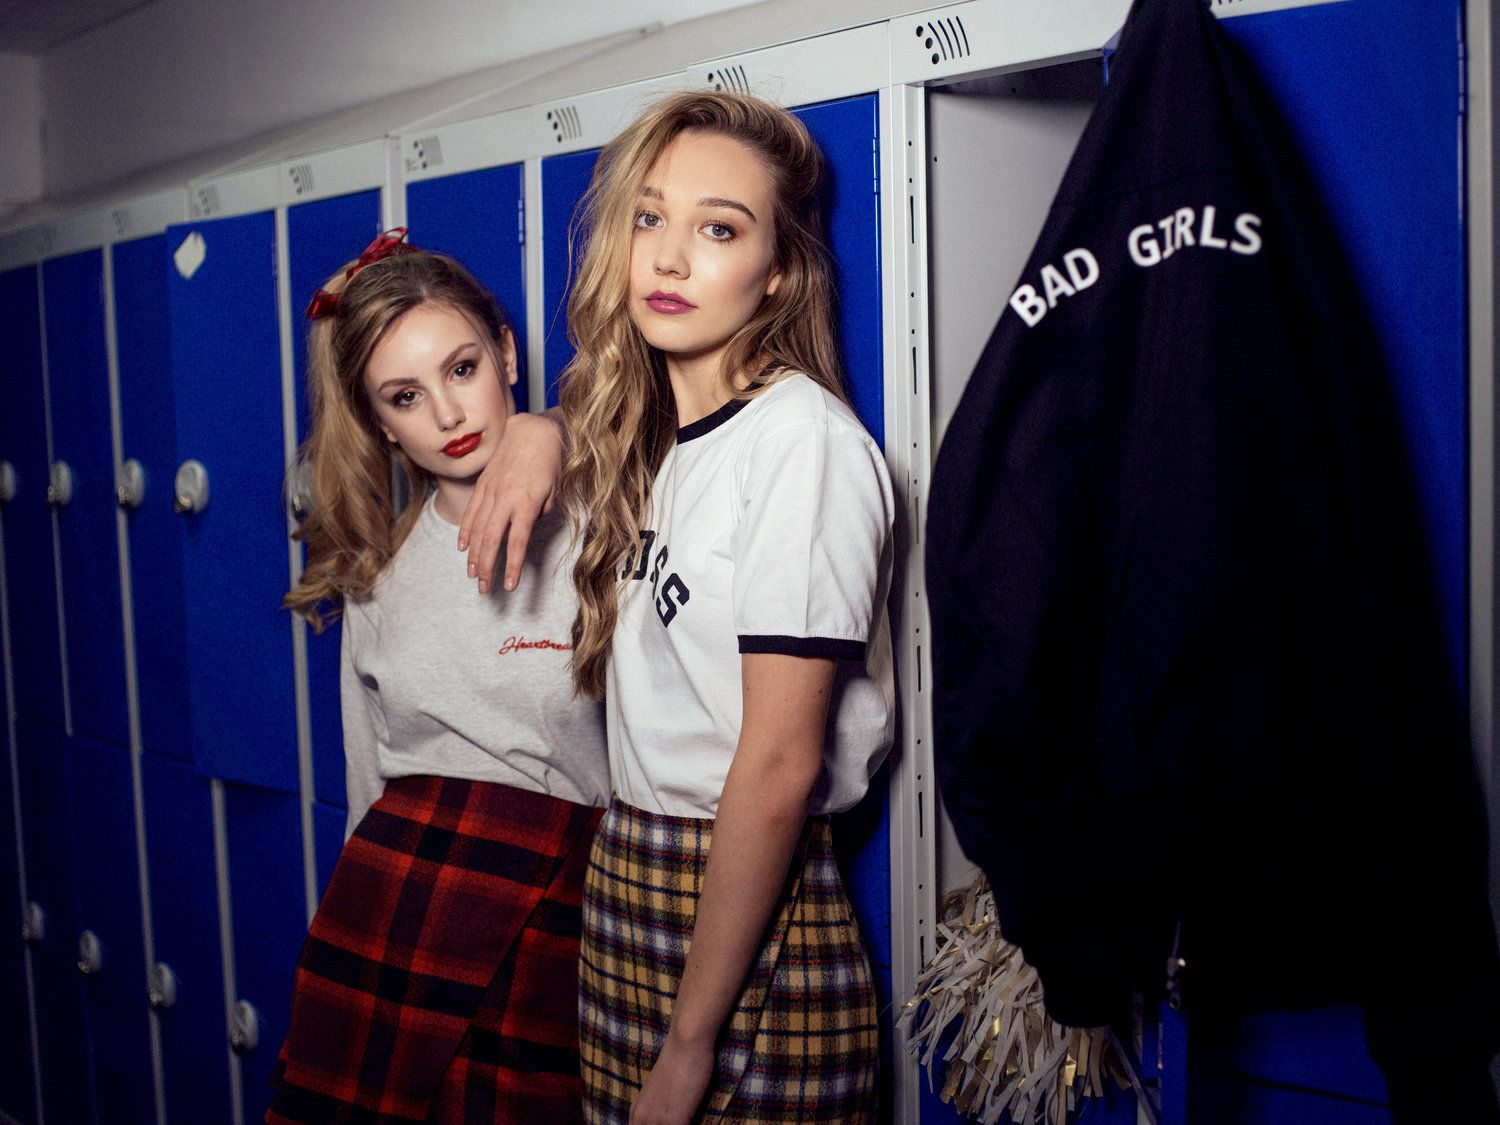 High School Bad Girls | Inspiration teenager, Bad girls ...